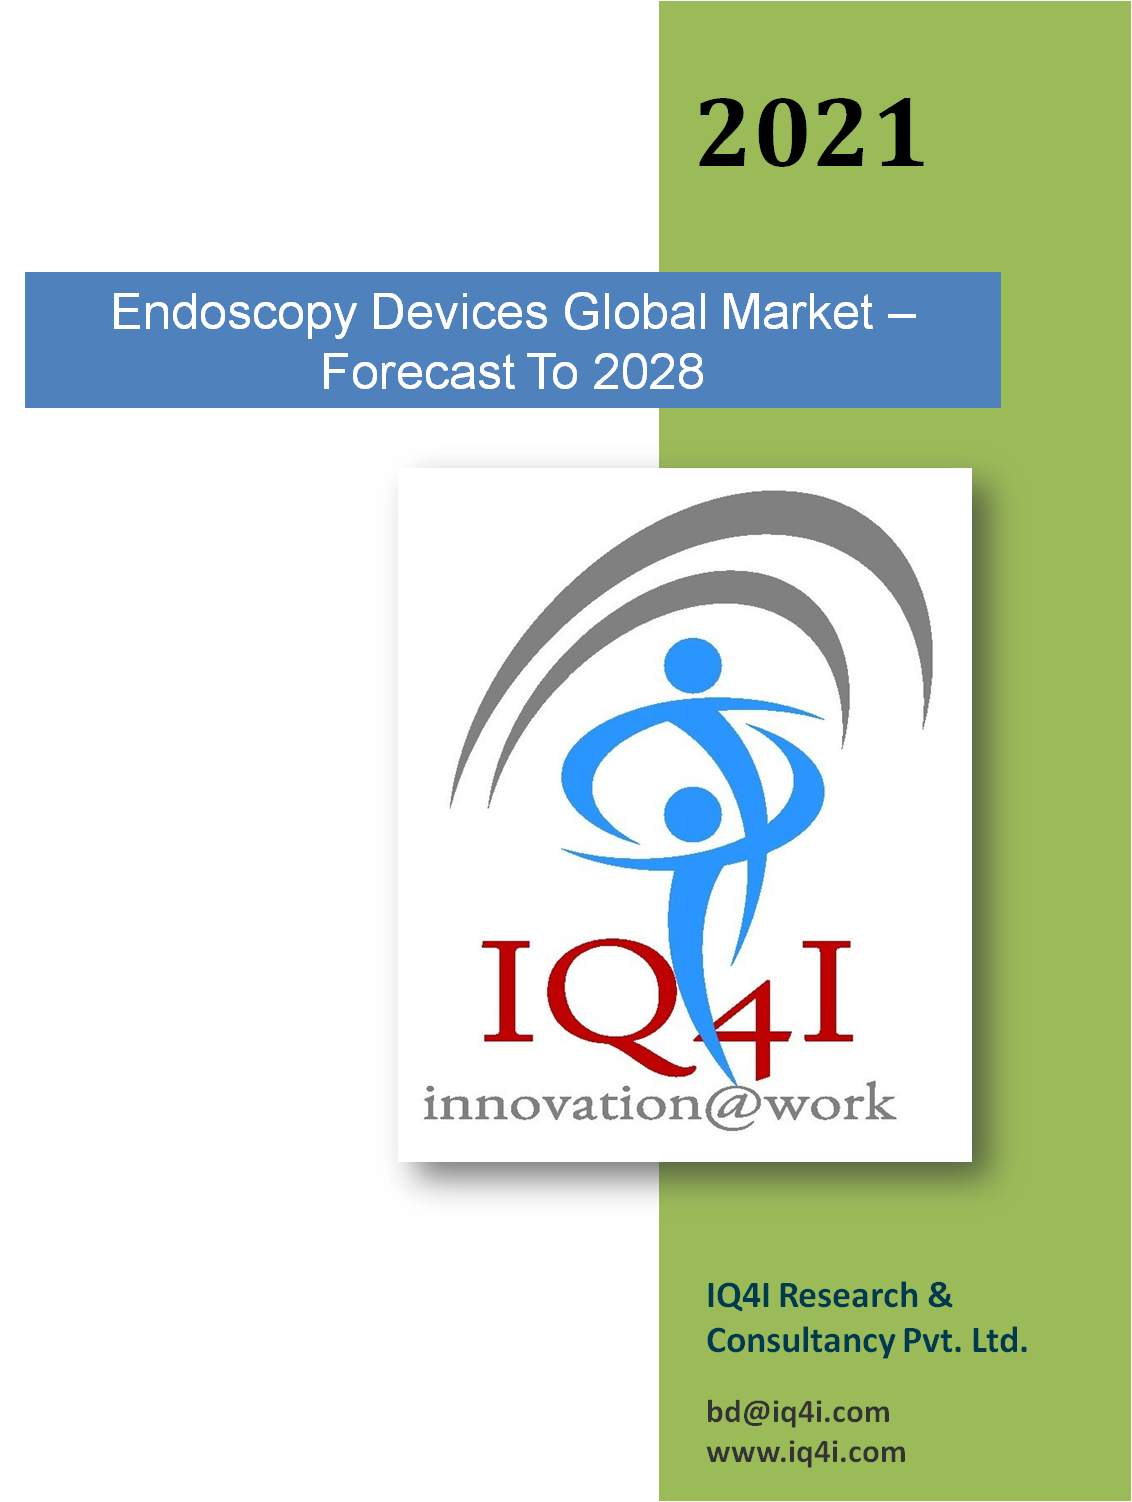 Endoscopy Devices Global market - Forecast to 2028